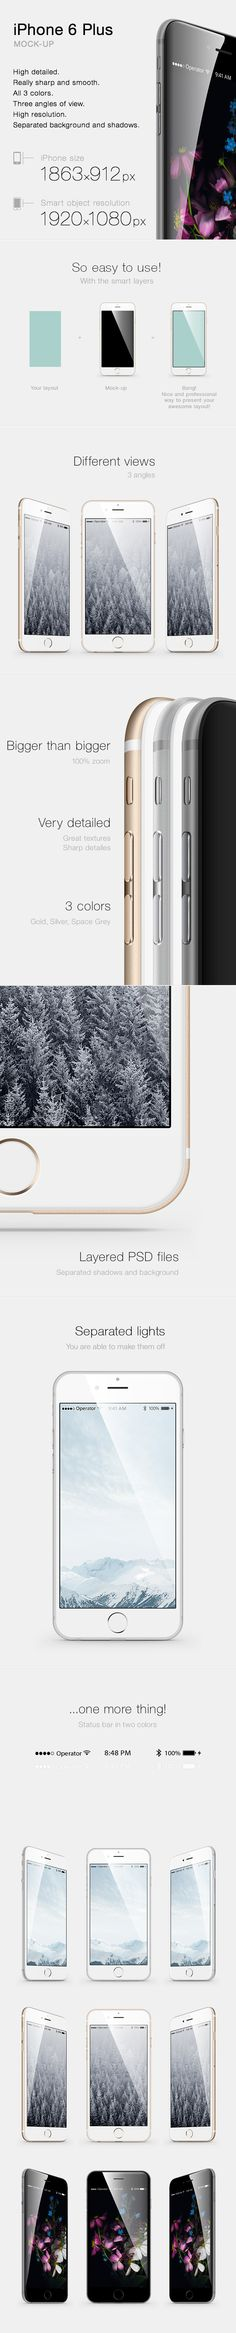 #iPhone_6_Plus #Mock-up on #Behance DOWNLOAD https://www.behance.net/gallery/19932015/iPhone-6-Plus-Mock-up?share=1